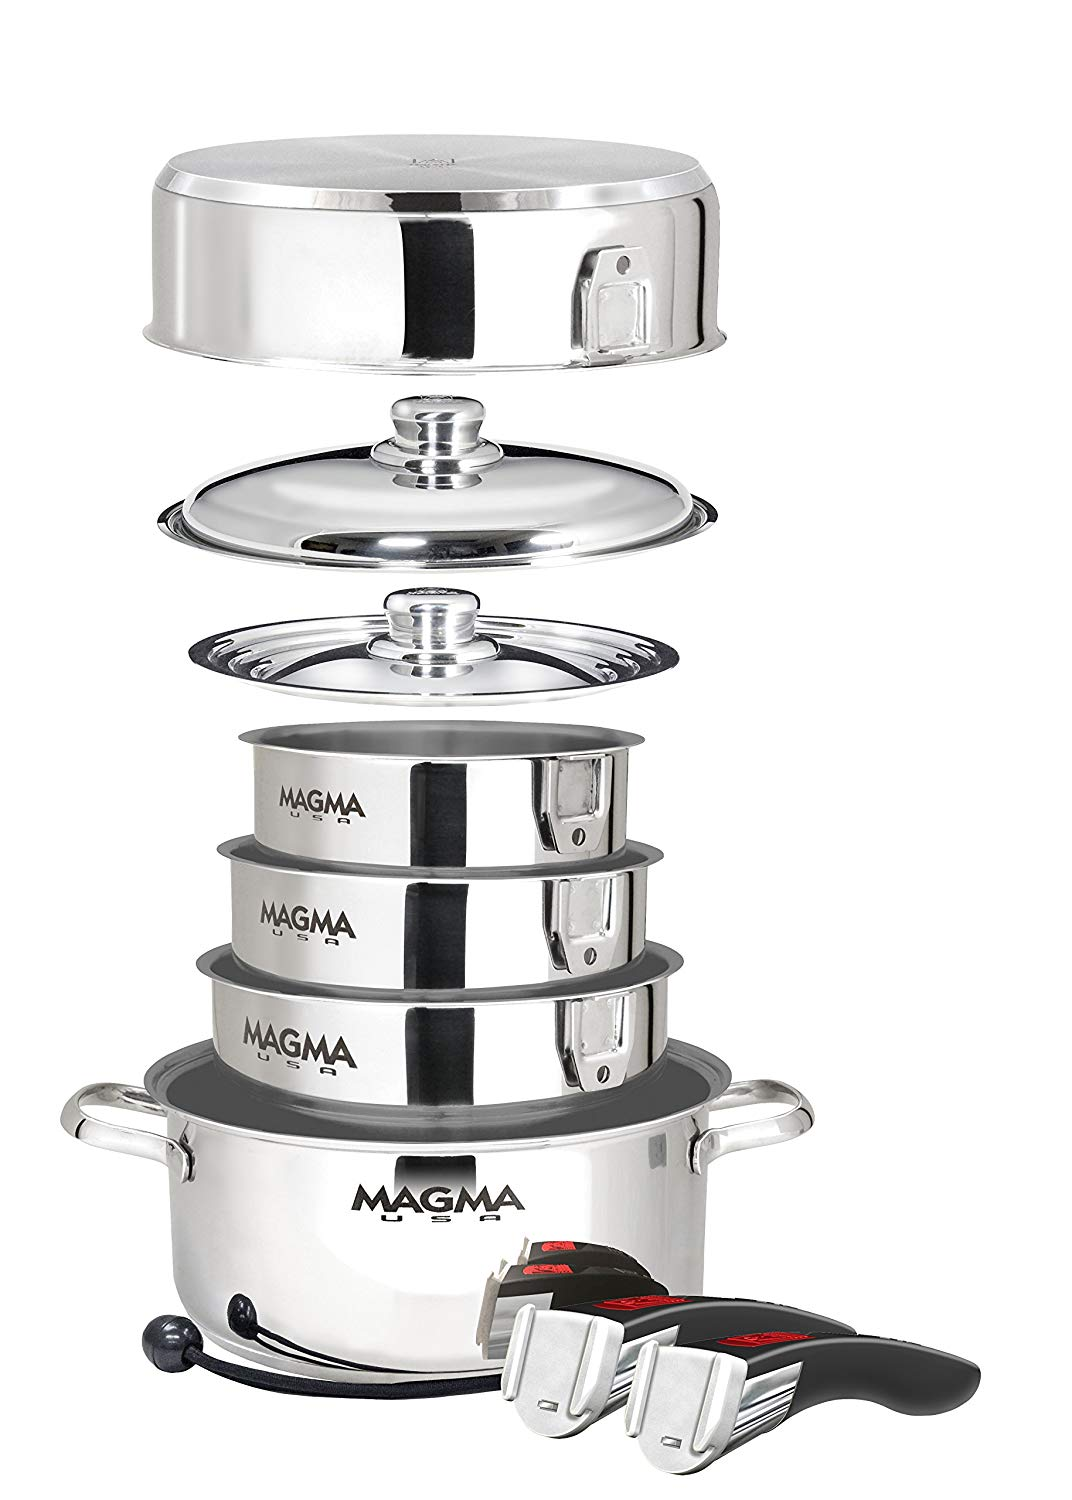 Magma Products, A10-366-IND A10-366-IND, 10 Piece Gourmet Nesting Stainless Steel Cookware, Non-Stick Ceramica for Induction Cooktops